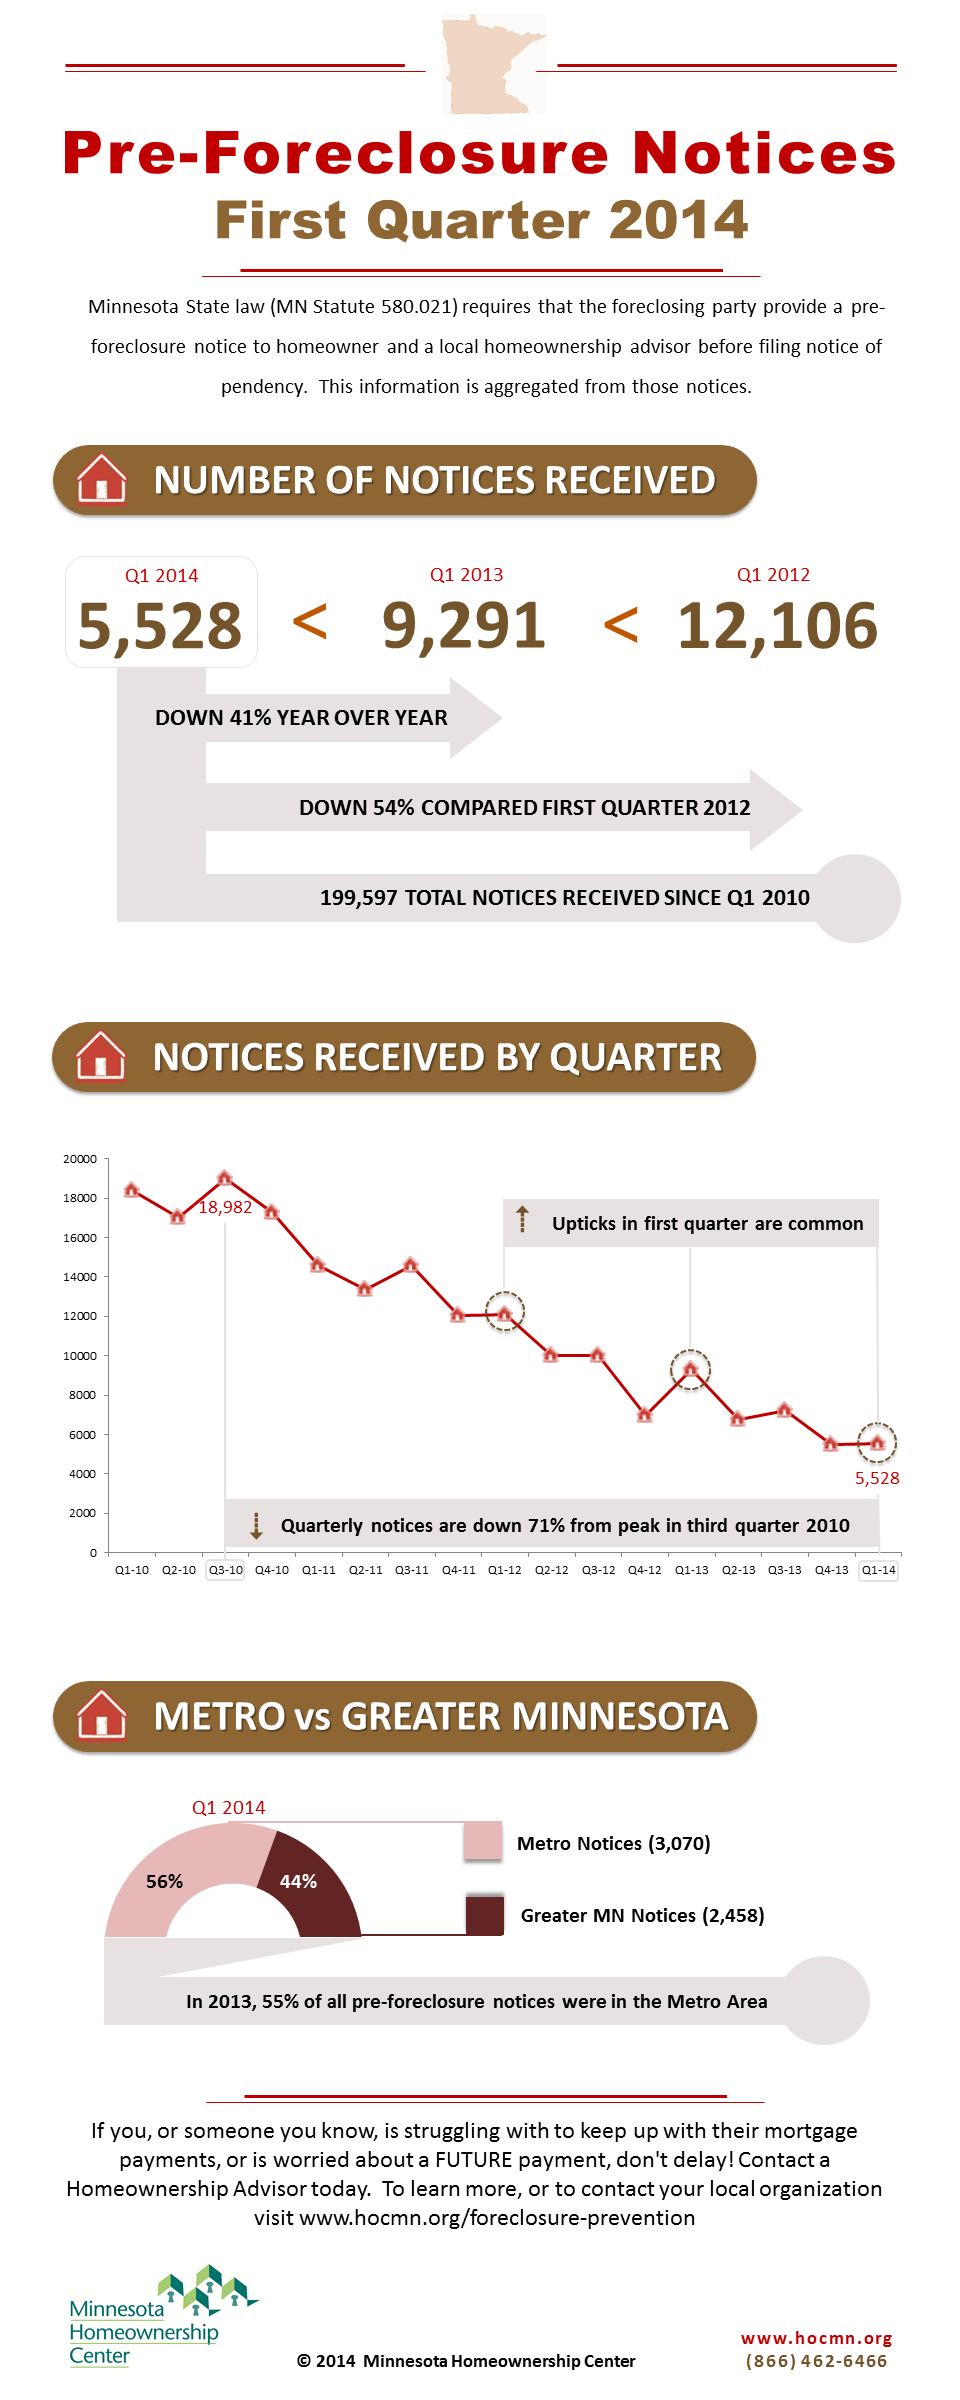 PreforeclosureNotice_Graphic_Q1_2014